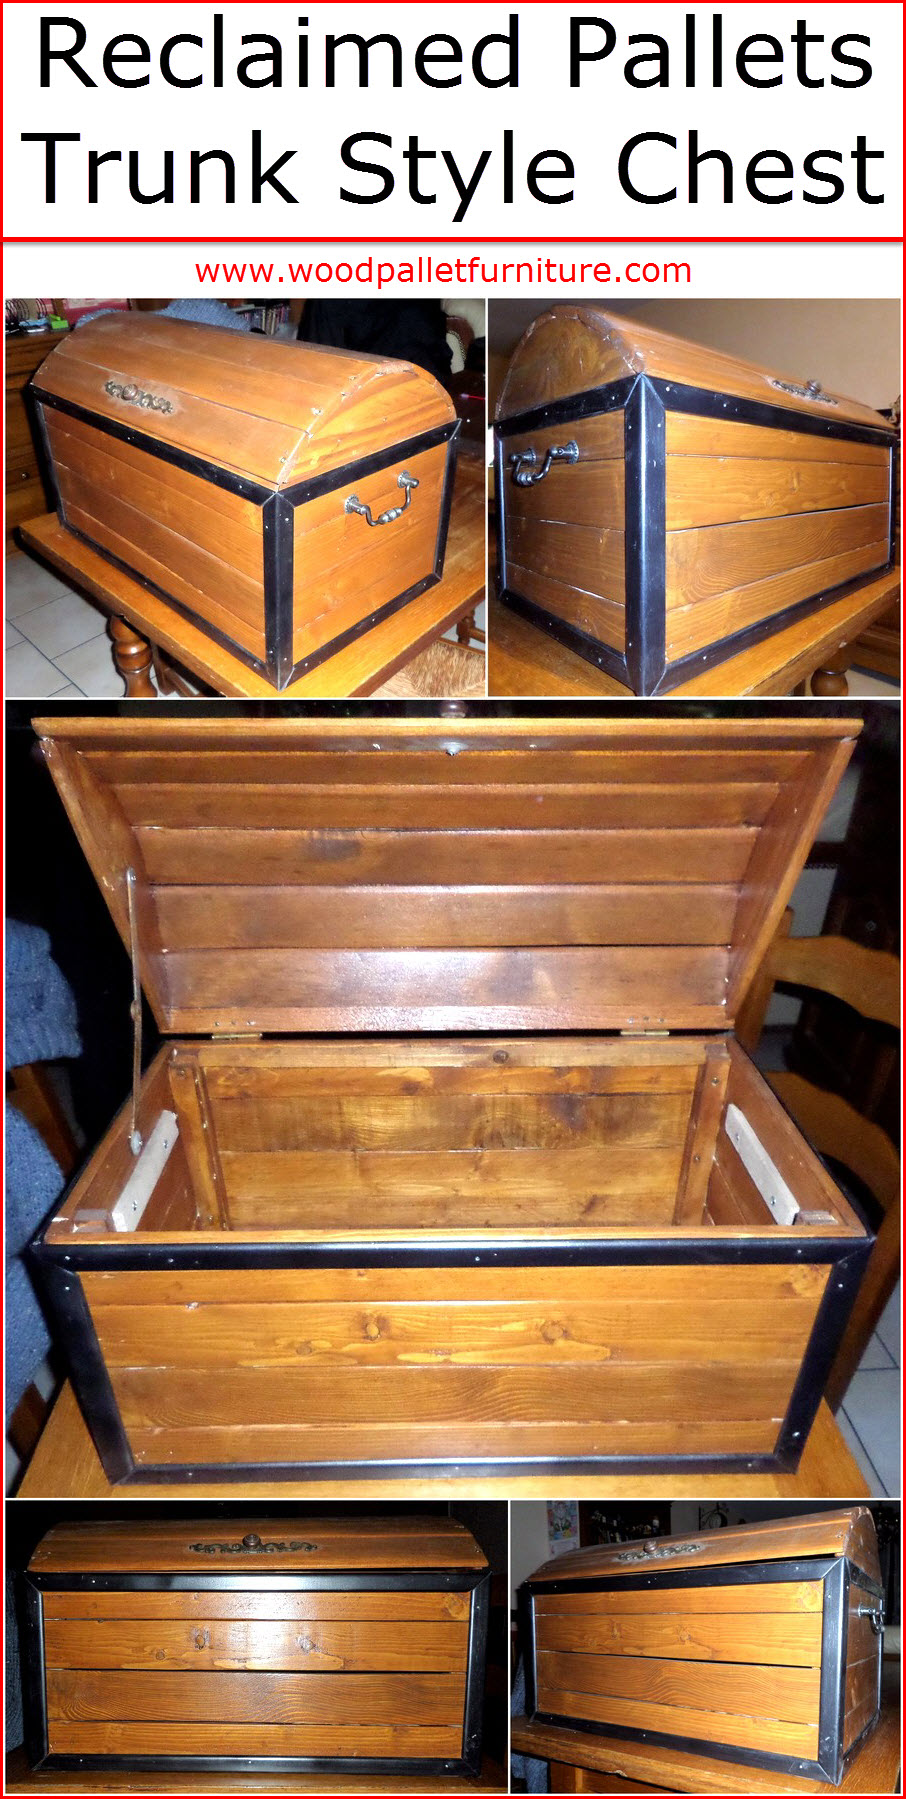 reclaimed-pallets-trunk-style-chest